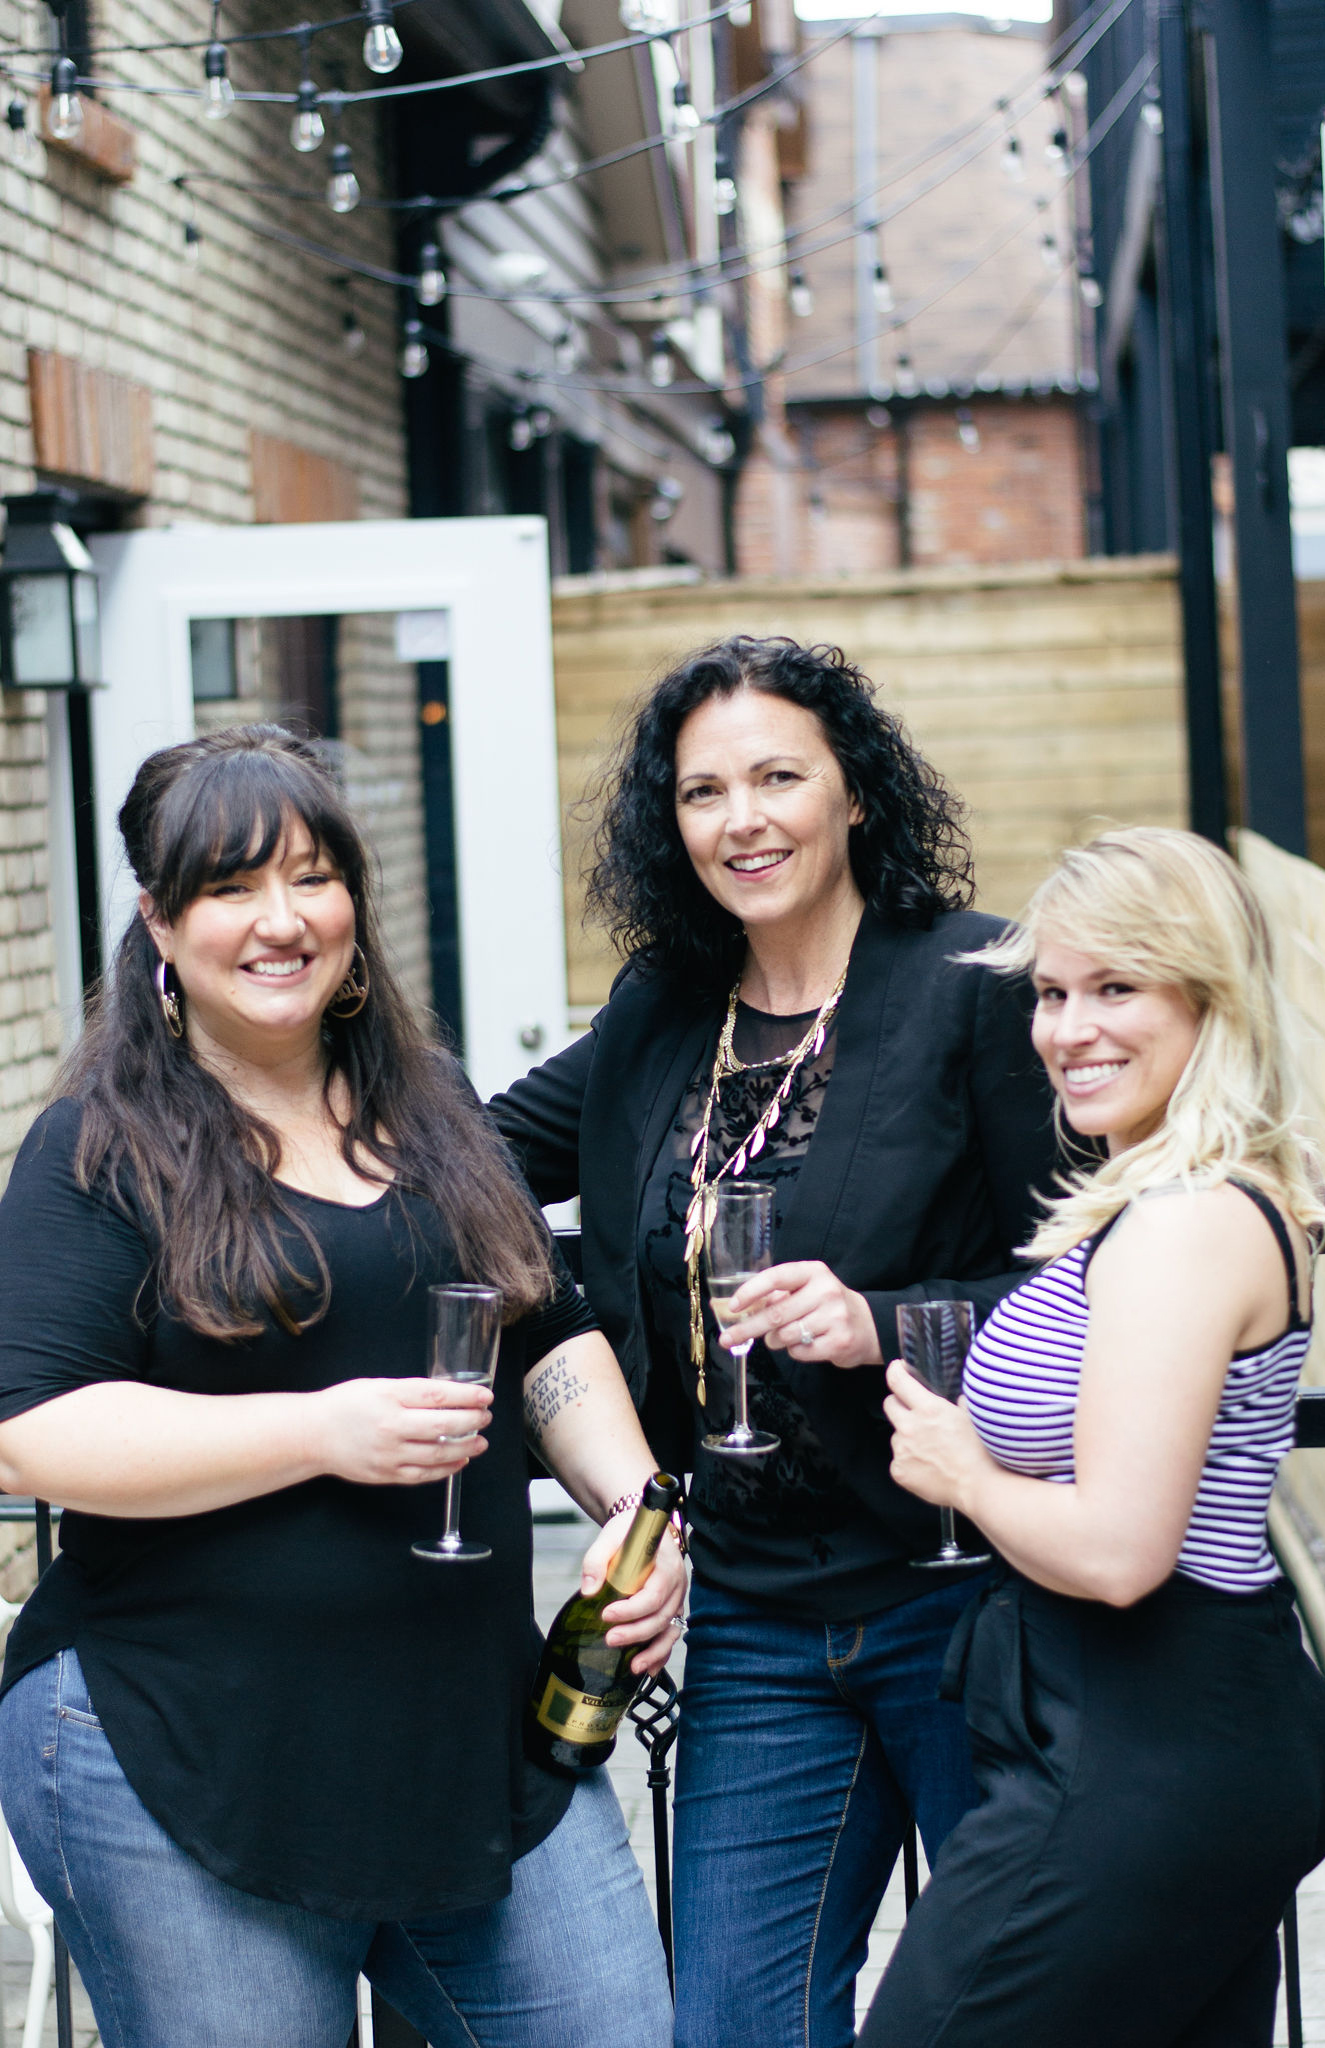 Founders Jessica Waugh, Jillian Bowman and Beth Marchant